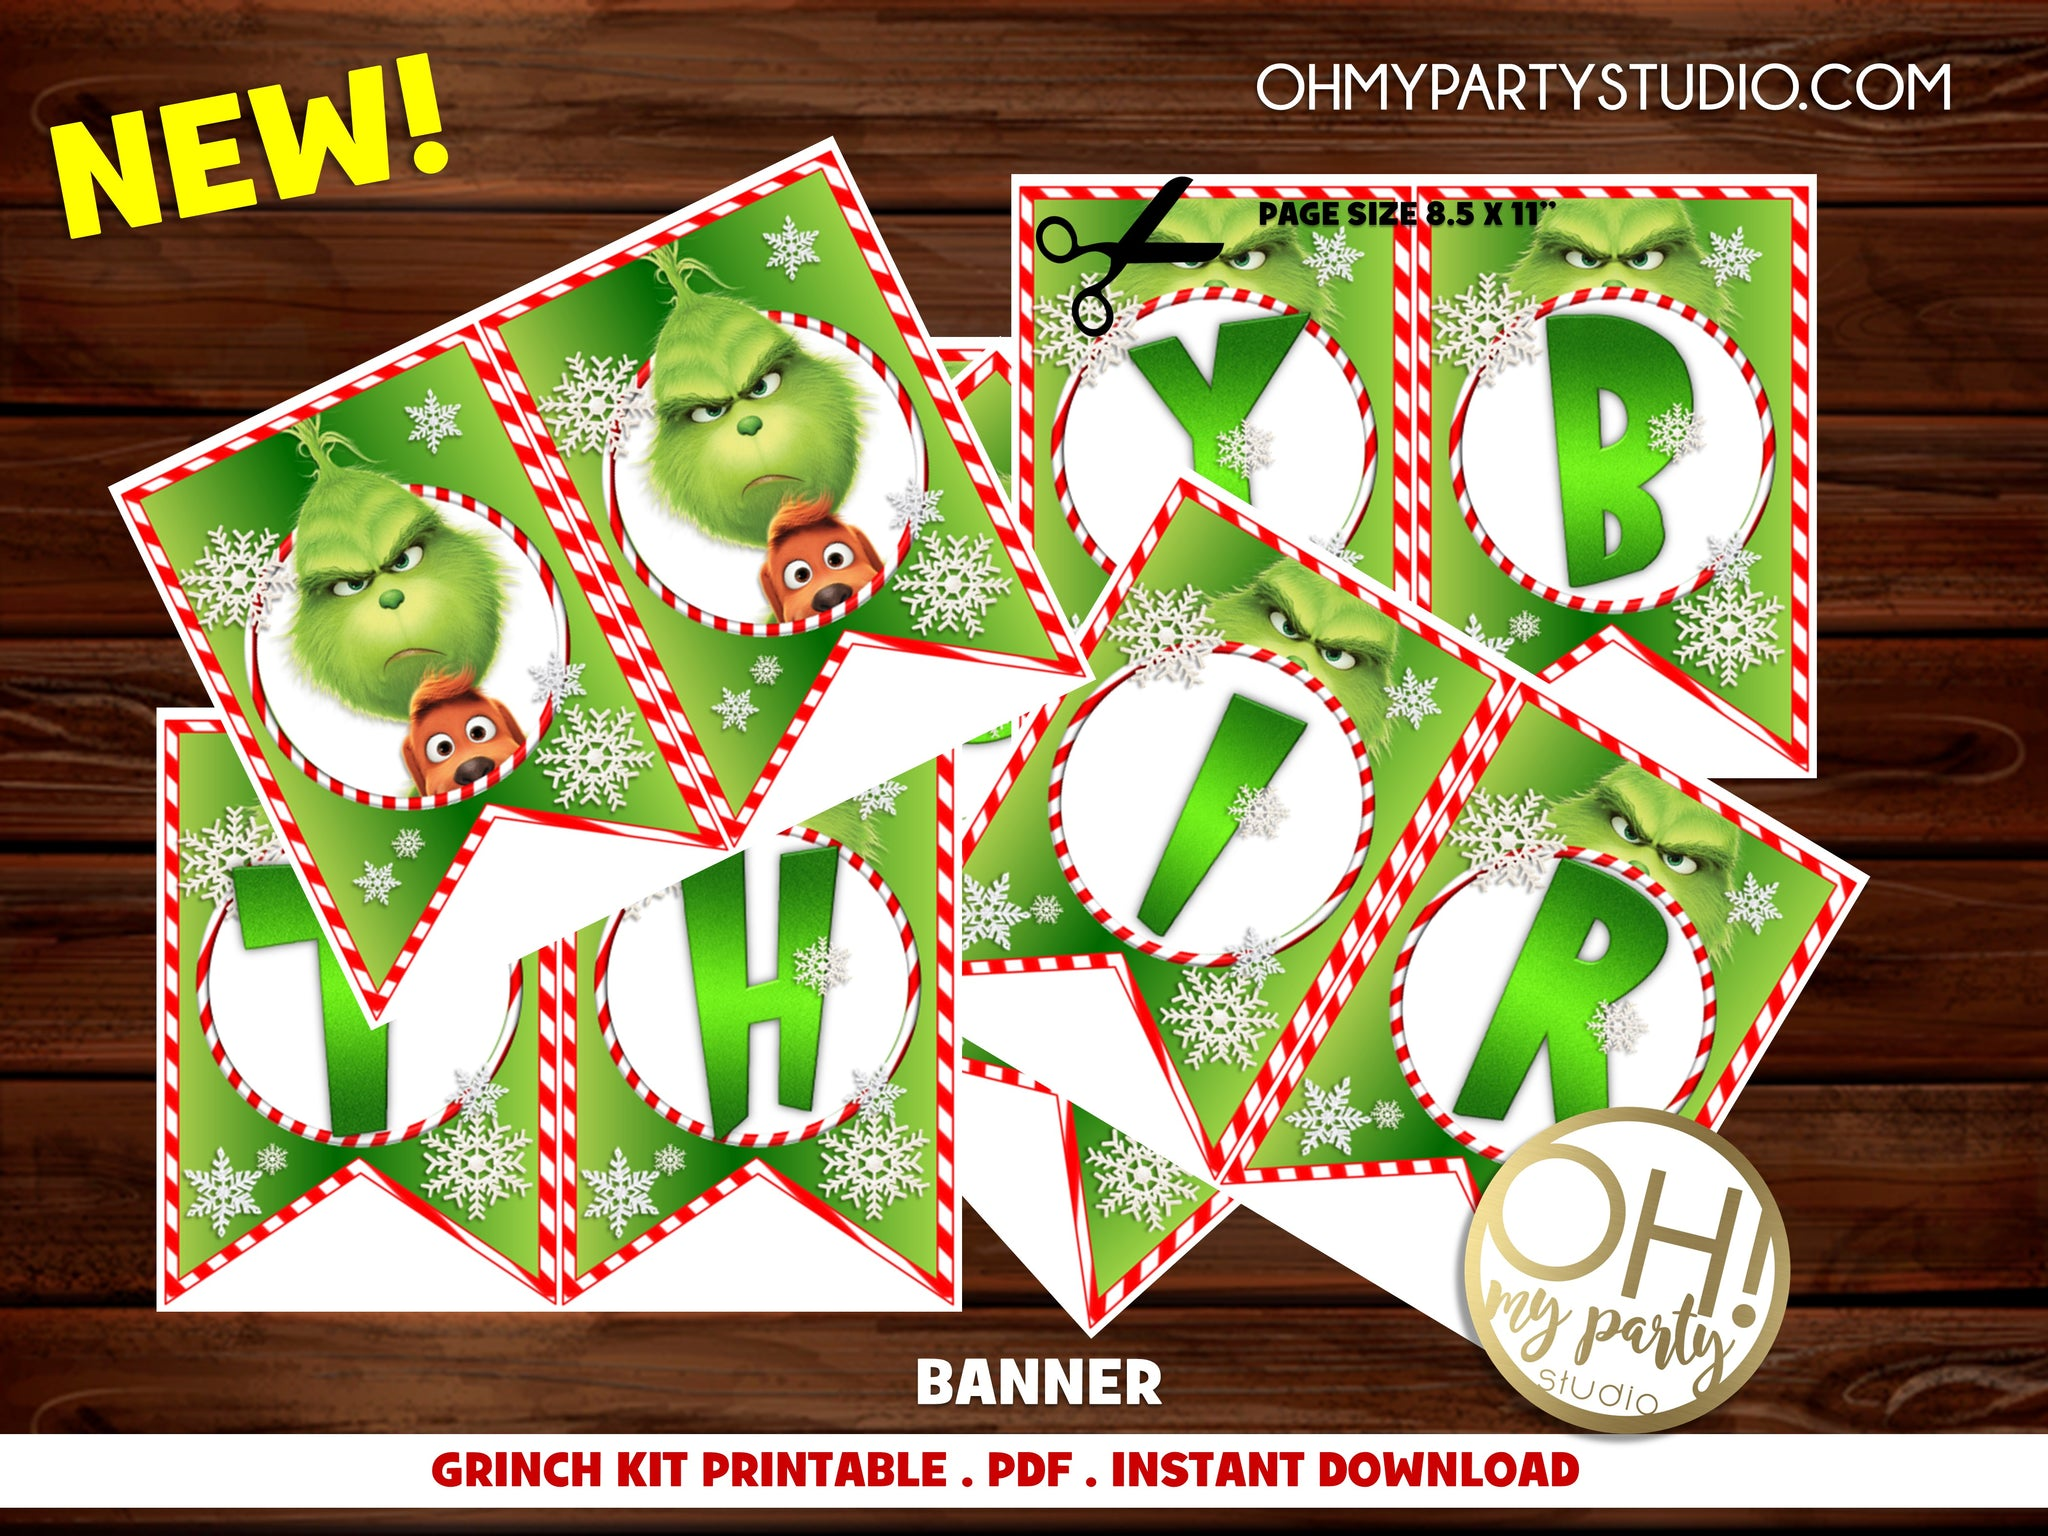 GRINCH BIRTHDAY PARTY, GRINCH BIRTHDAY DECORATIONS, GRINCH PARTY IDEAS, GRINCH PARTY SUPPLIES, GRINCH PARTY THEME, GRINCH BIRTHDAY PARTY IDEAS, GRINCH PARTY, GRINCH BIRTHDAY, GRINCH BIRTHDAY BANNER, GRINCH BIRTHDAY PARTY DECORATIONS, GRINCH THANK YOU TAGS, GRINCH PARTY PRINTABLES, GRINCH CUPCAKE TOPPERS, GRINCH CAKE, GRINCH CAKE TOPPER, GRINCHMAS INVITATION, GRINCH INVITATIONS, GRINCH BIRTHDAY INVITATION, GRINCH INVITATIONS, GRINCH INVITE